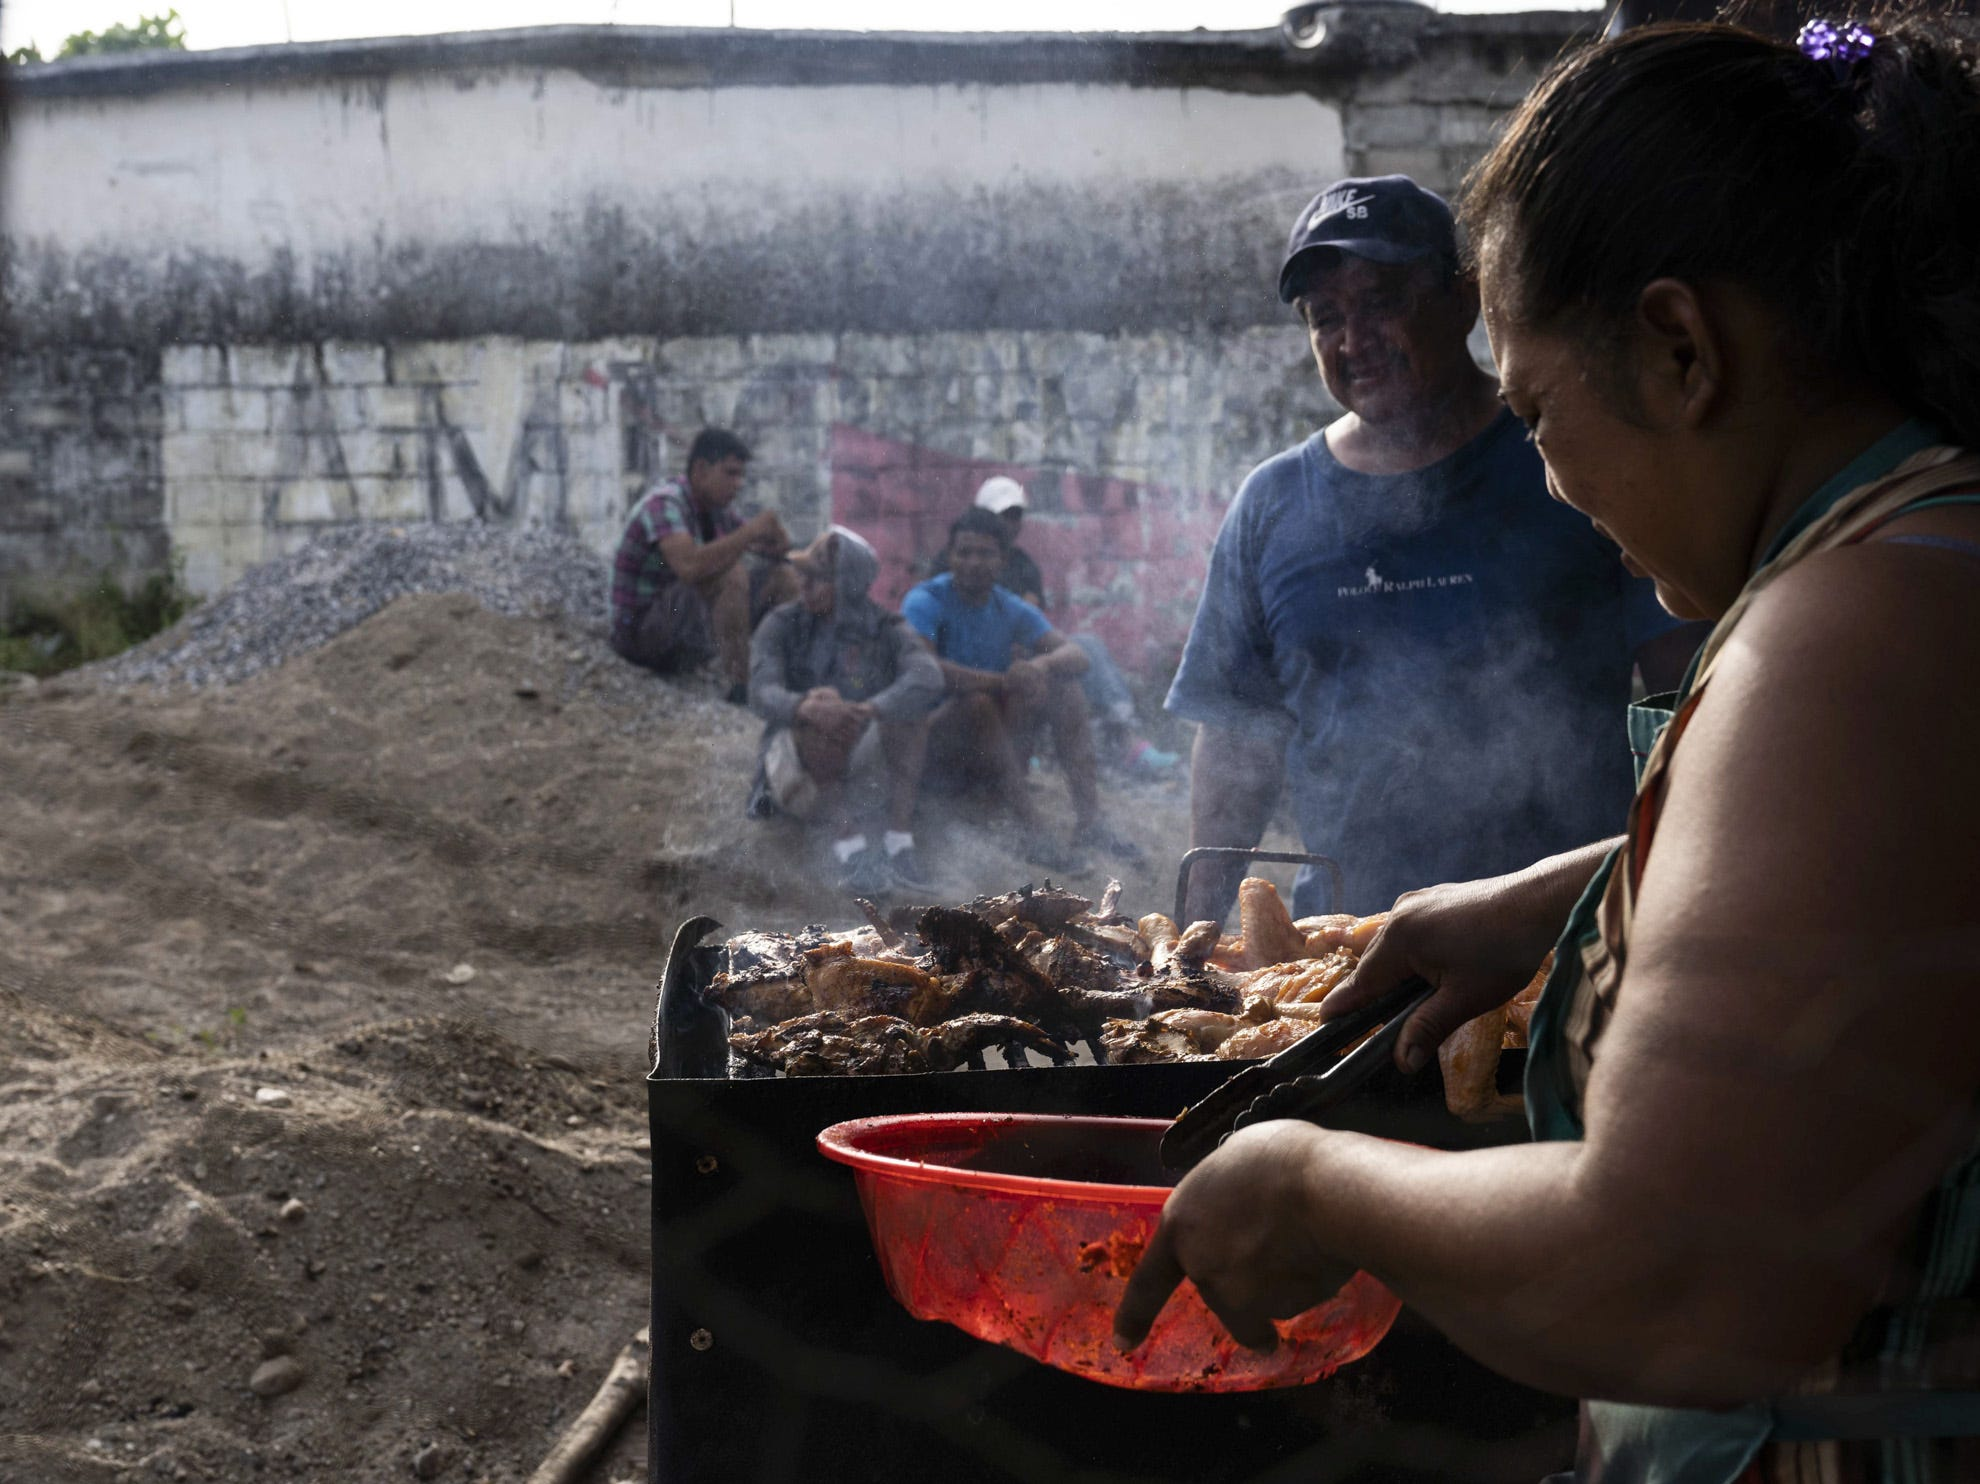 Migrants from Honduras and other Central American countries traveling in a caravan headed for the U.S. reached the town of Santiago Niltepec in the state of Oaxaca. The town is still recovering from a powerful 8.2 earthquake last year, but the resident even came out to offer food, water, and shelter in the town's central plaza. The caravan passed through a Mexican immigration checkpoint on the way, but immigration officials stood by and let them pass. None of the migrants boarded buses that sat empty offering to take those who didn't want to go farther a chance to head back to their countries. Instead, the migrants jumped on flat-bed trucks, gasoline tankers, pickups and any other vehicle that slowed down to give them rides, while immigration officials stood and watched.